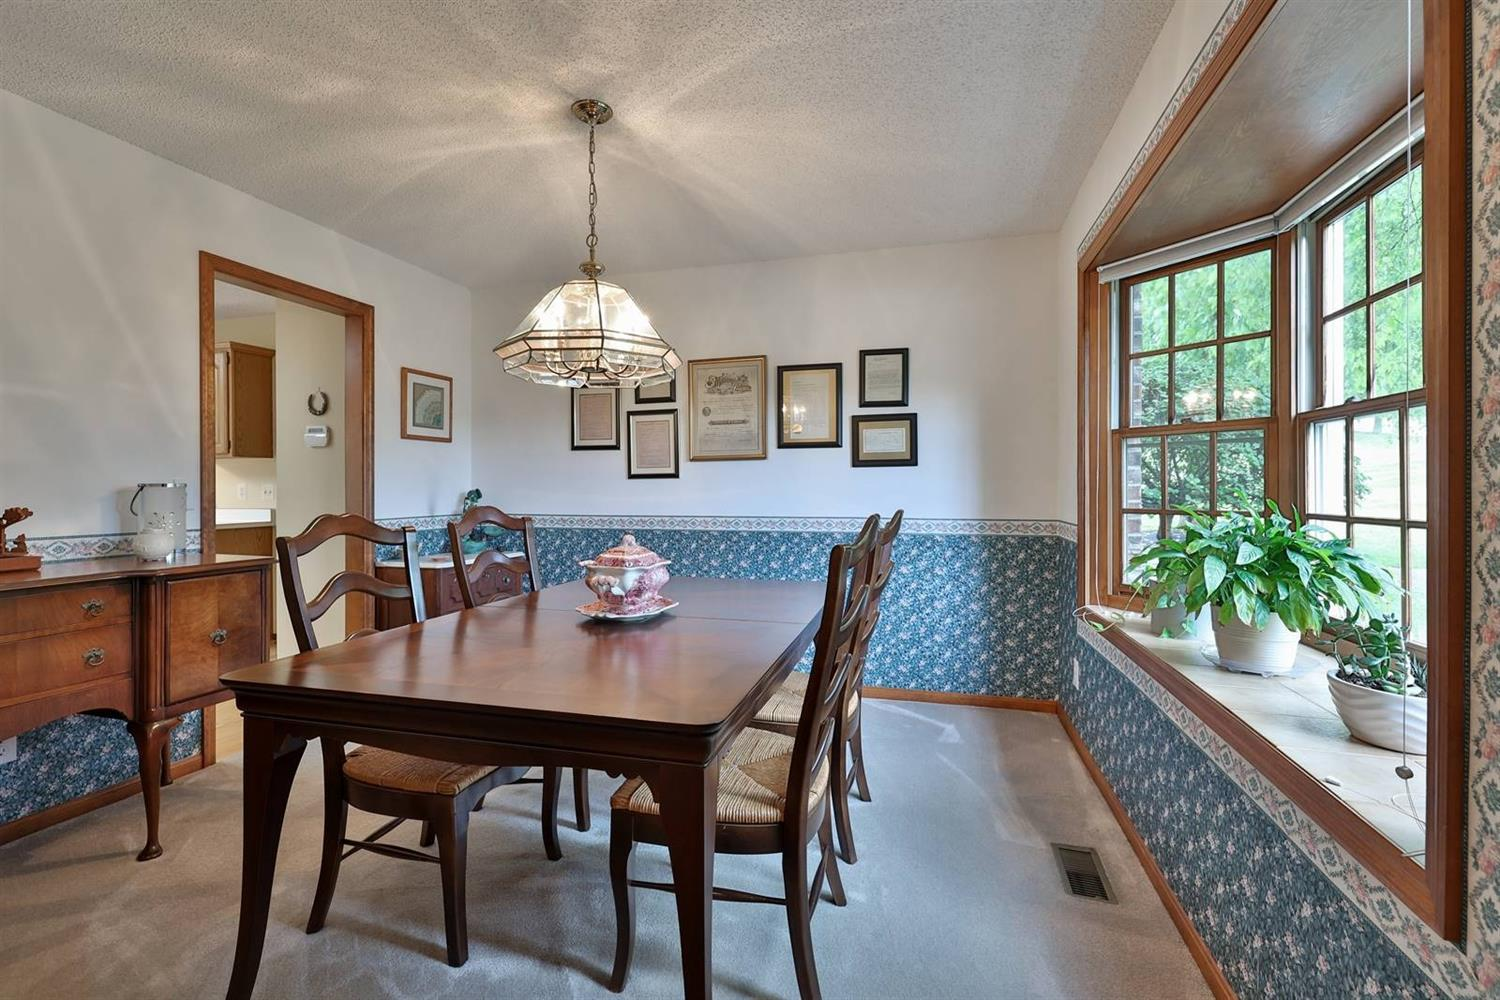 Dining room with bay window and window seat.....